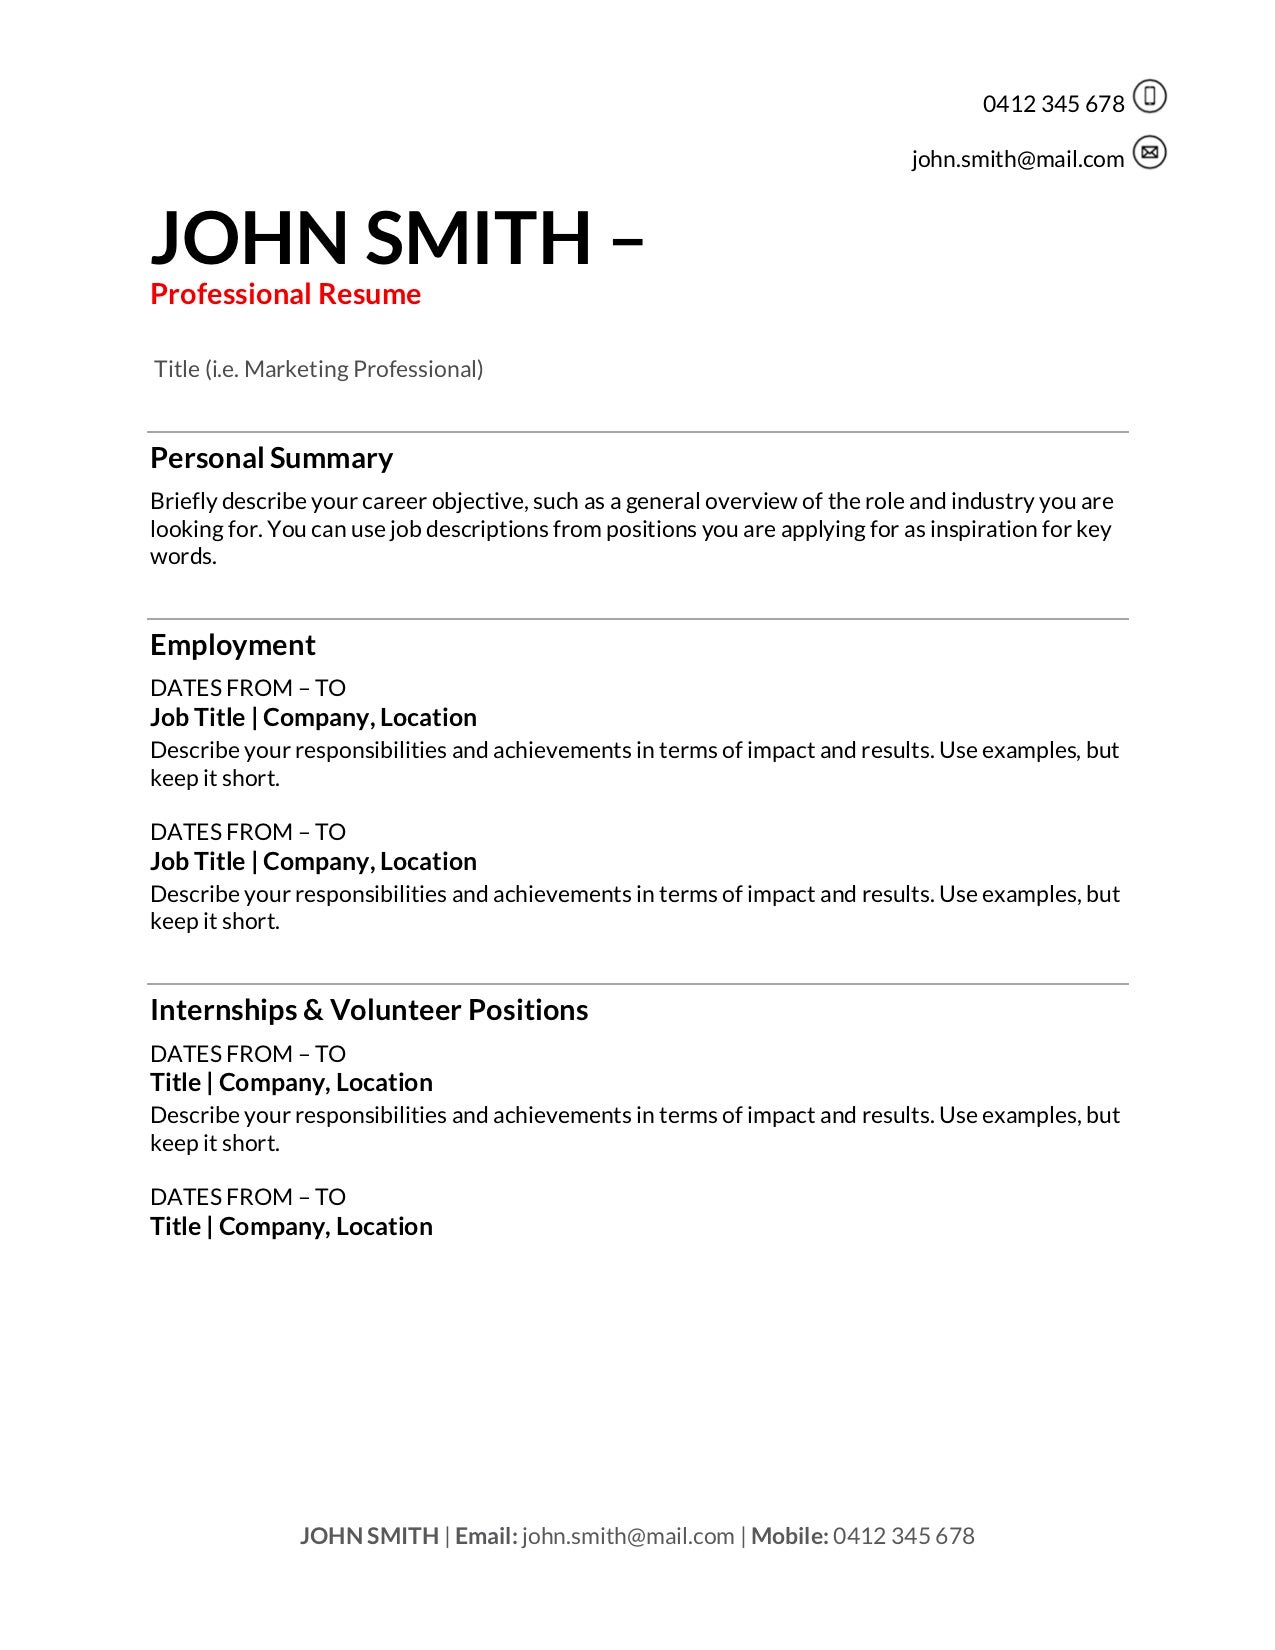 free resume templates to write in training au example of good for first job opposite Resume Example Of A Good Resume For A First Job